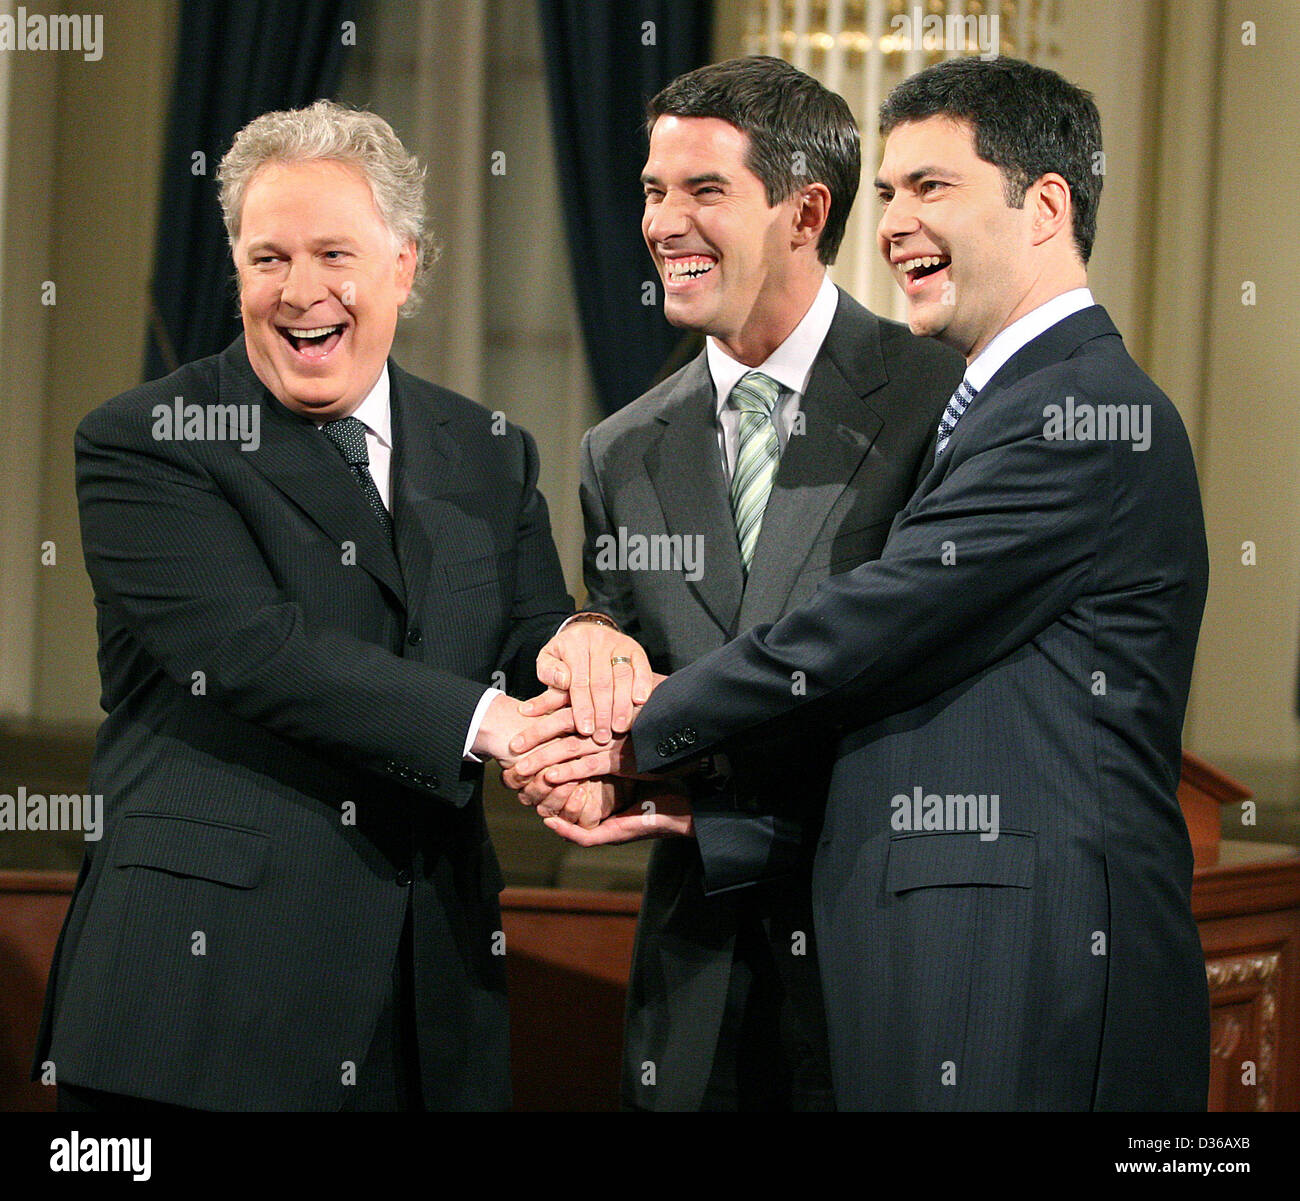 Jean Charest Mario Dumont Andre Boisclair - Stock Image